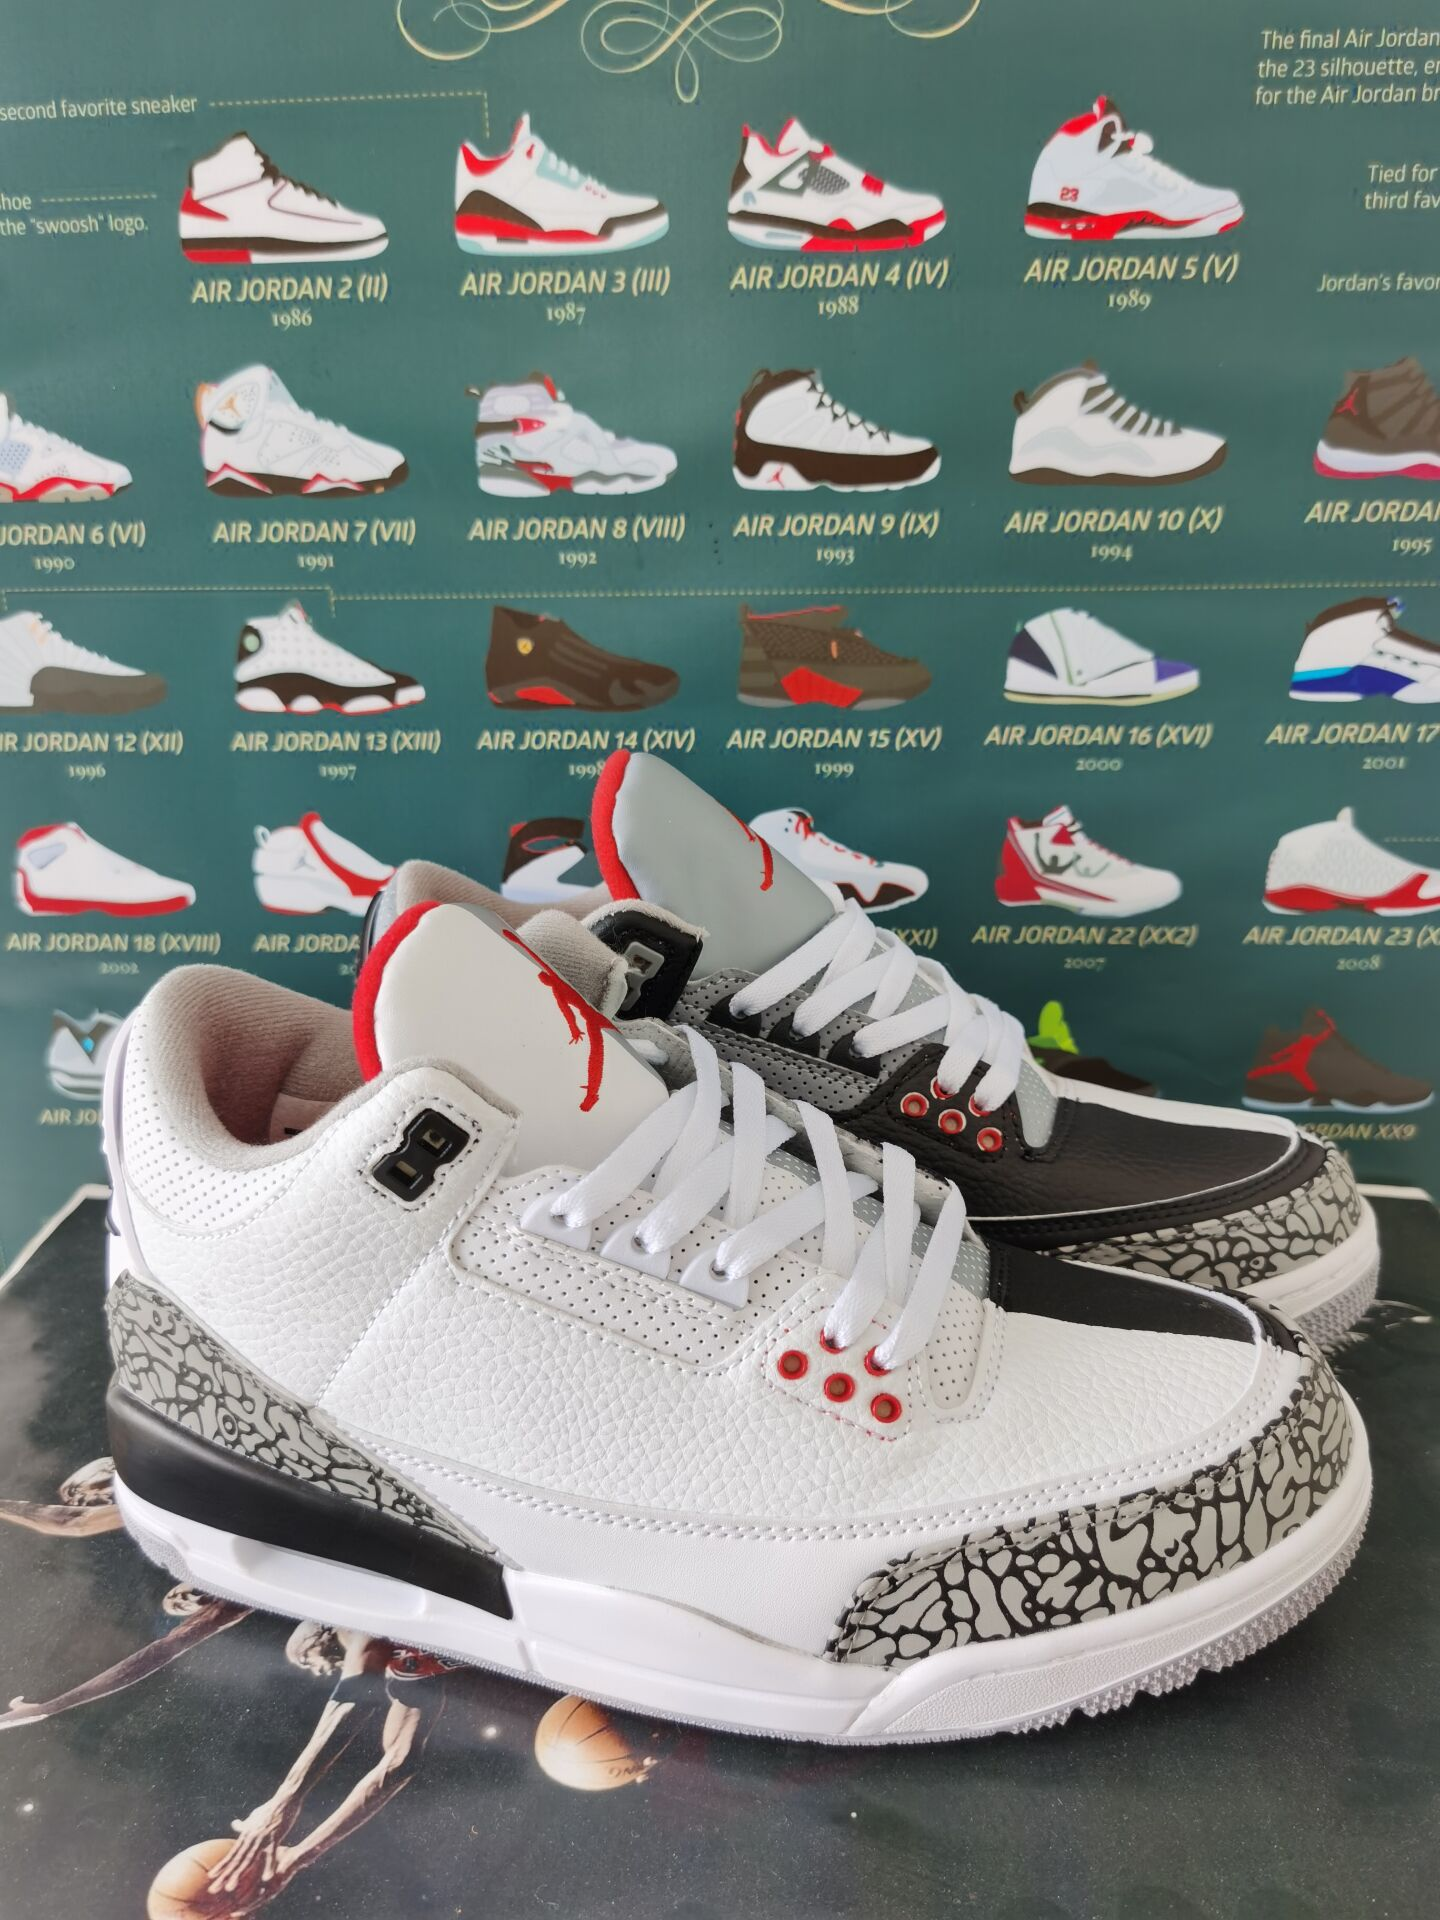 What the Jordan of AJ3 Shoes